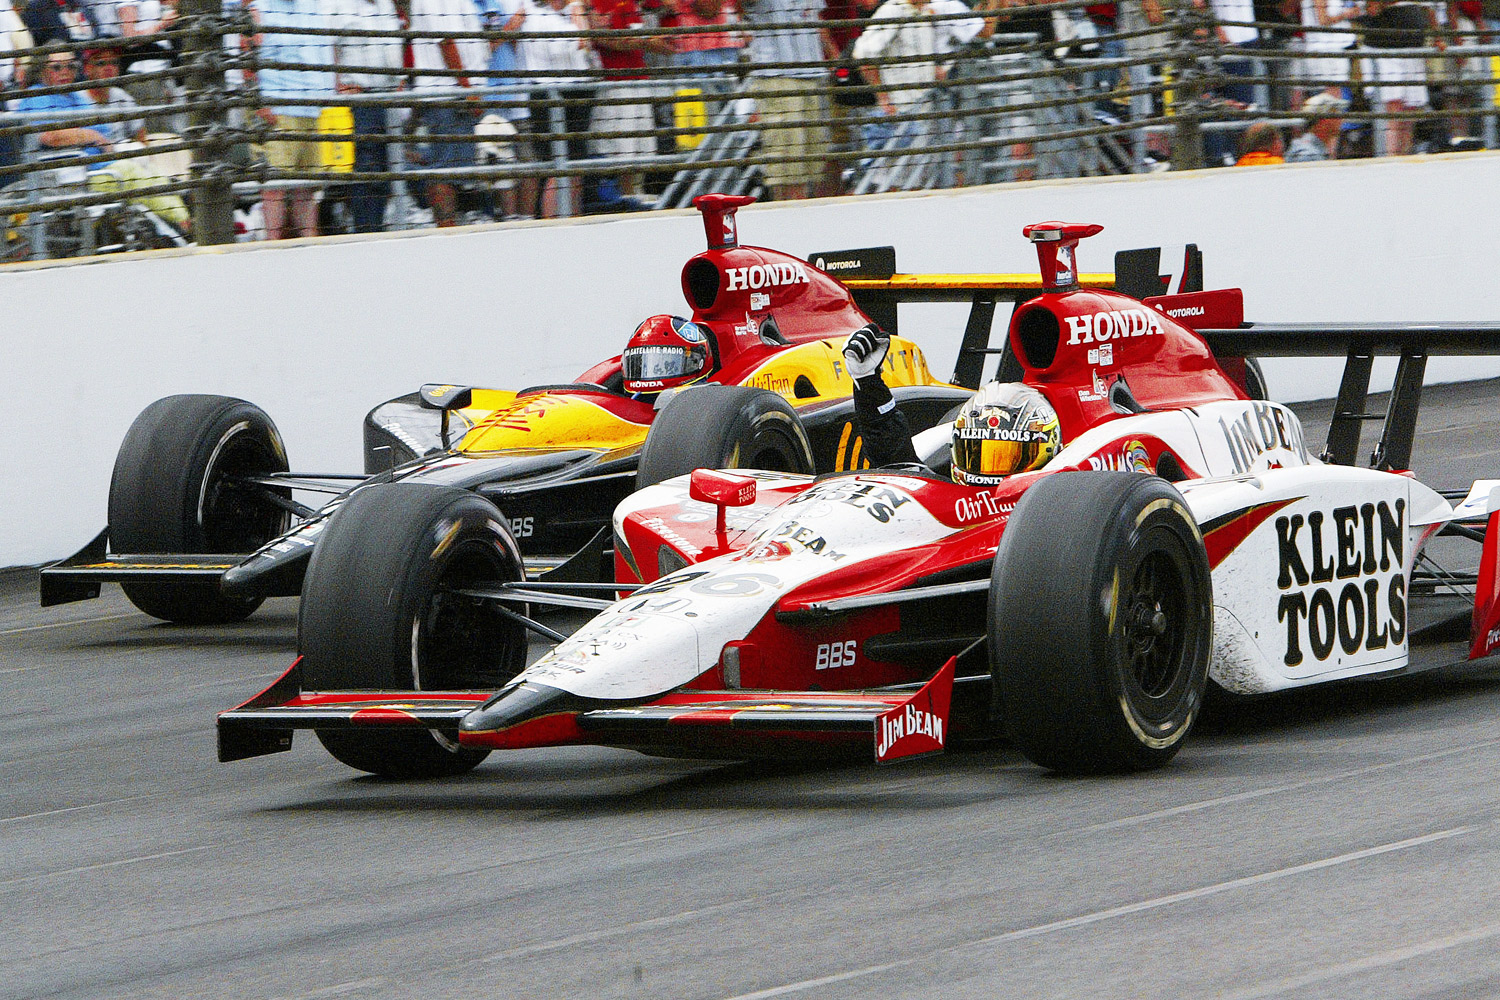 Dan Wheldon, shown here, won the Indy 500 in 2005, marking the first time an Englishman won the storied race since Graham Hill's victory in 1966. In 2011, Wheldon tragically lost his life in a 15-car accident at the IZOD IndyCar World Championship at Las Vegas Motor Speedway.